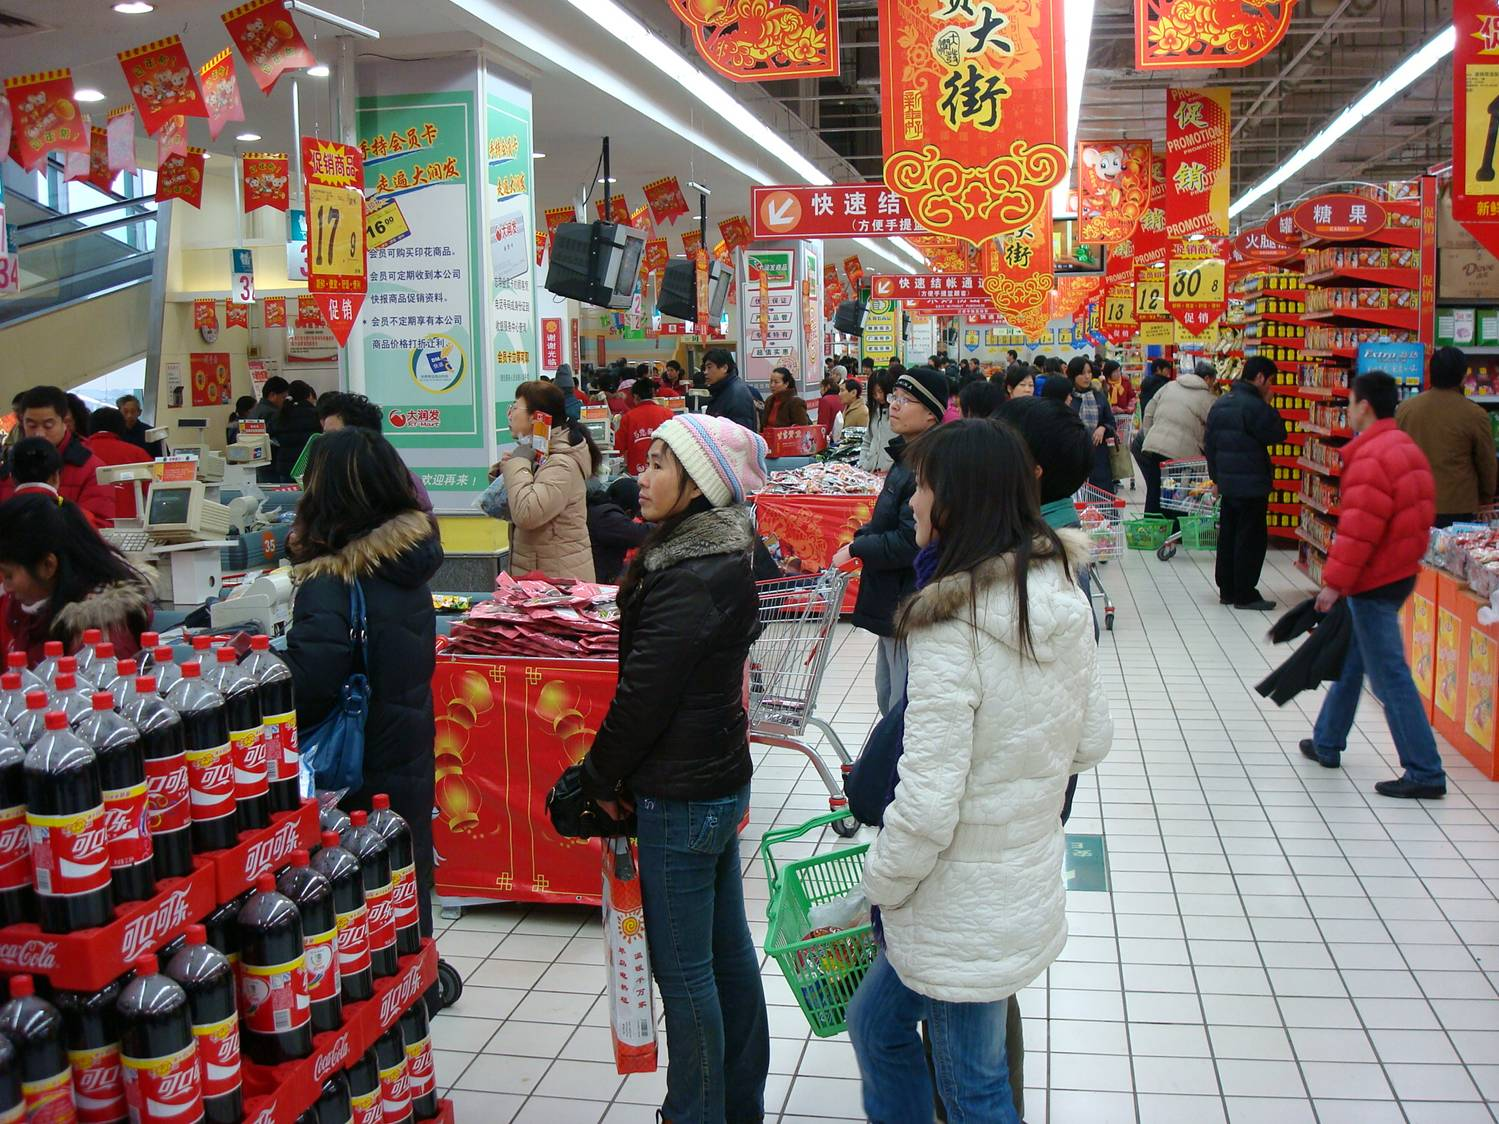 normal checkout  in a Chinese supermarket